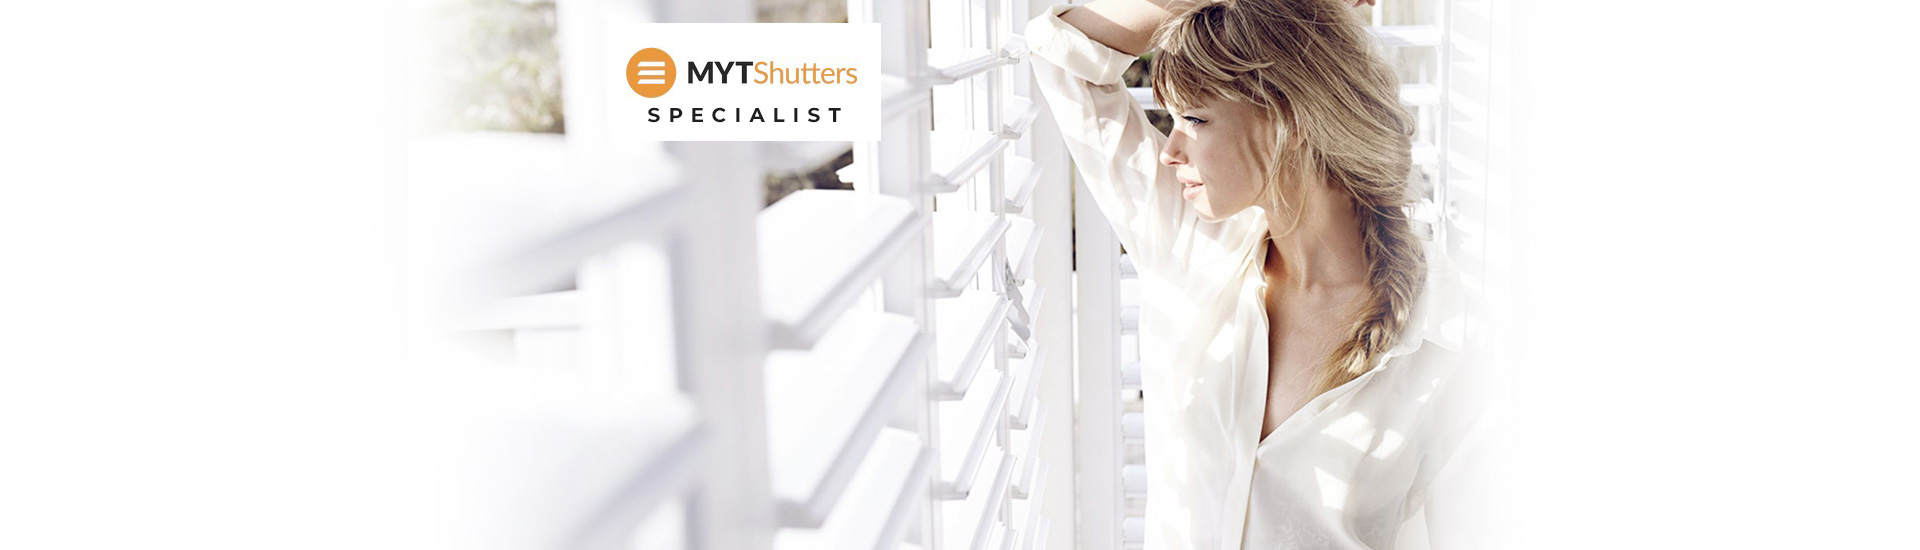 MYTShutters